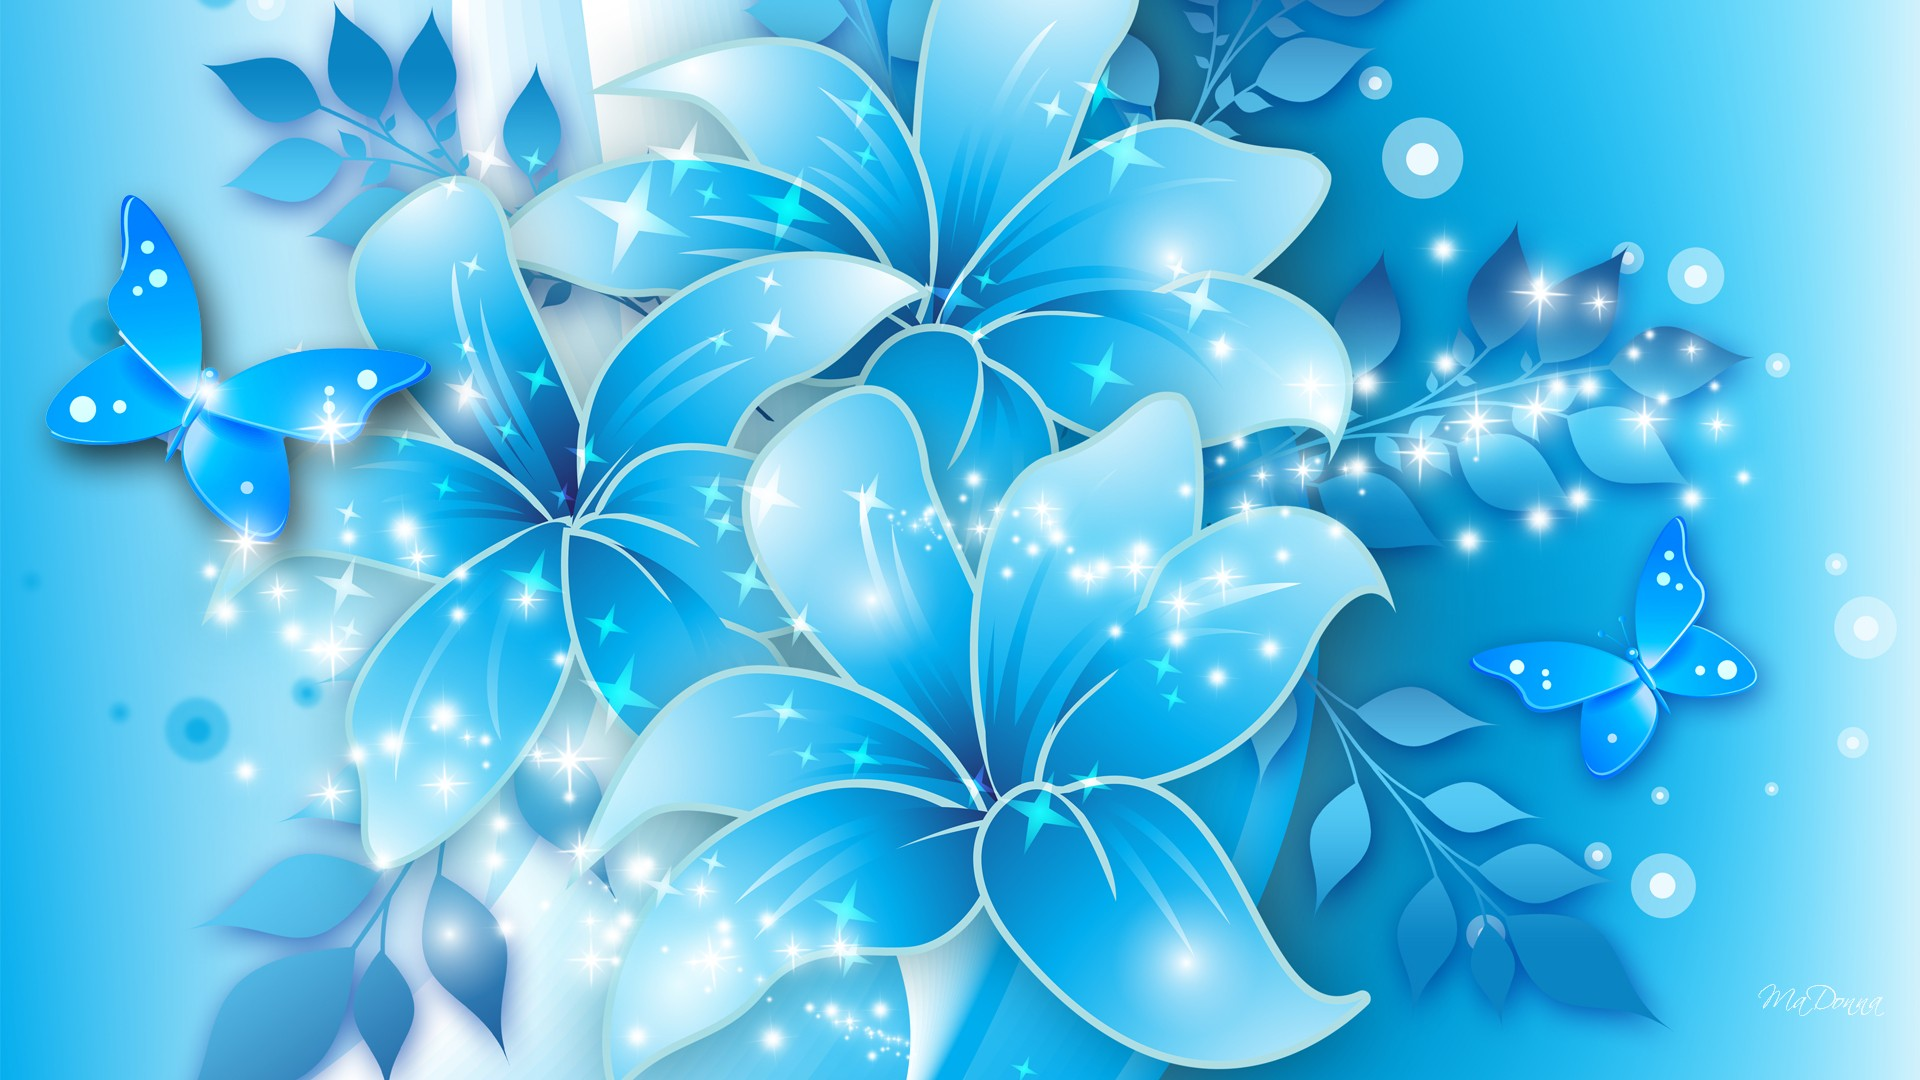 Wallpaper clipart blue flower Art art flower wallpaper7 wallpaper